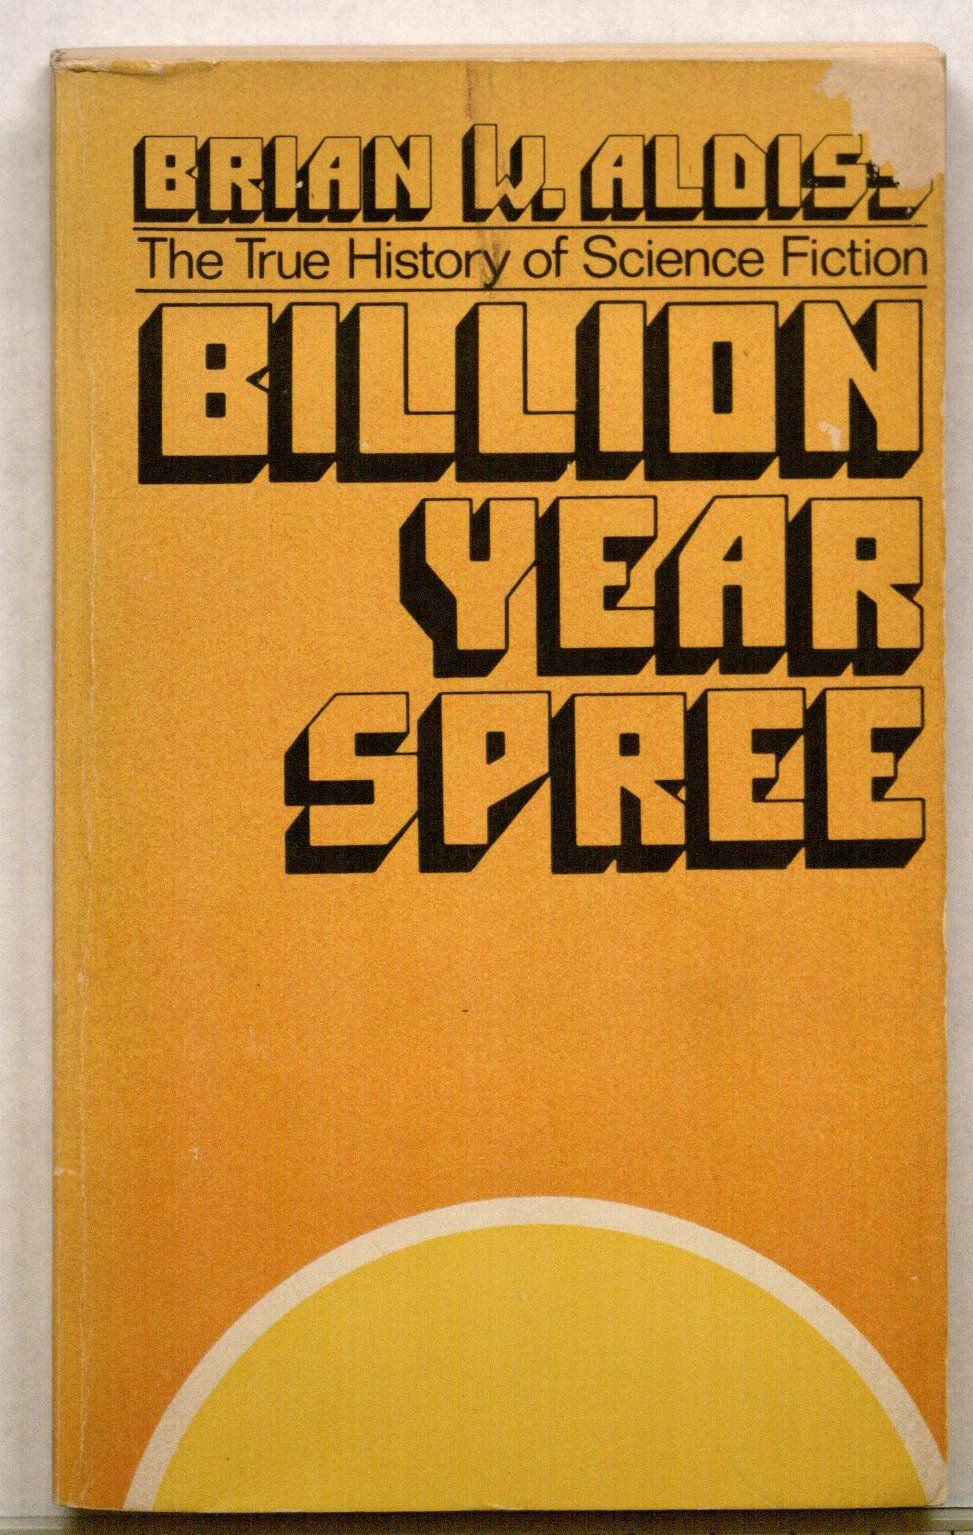 Cover of Brian Aldiss's Billion Year Spree (1974 paperback edition)